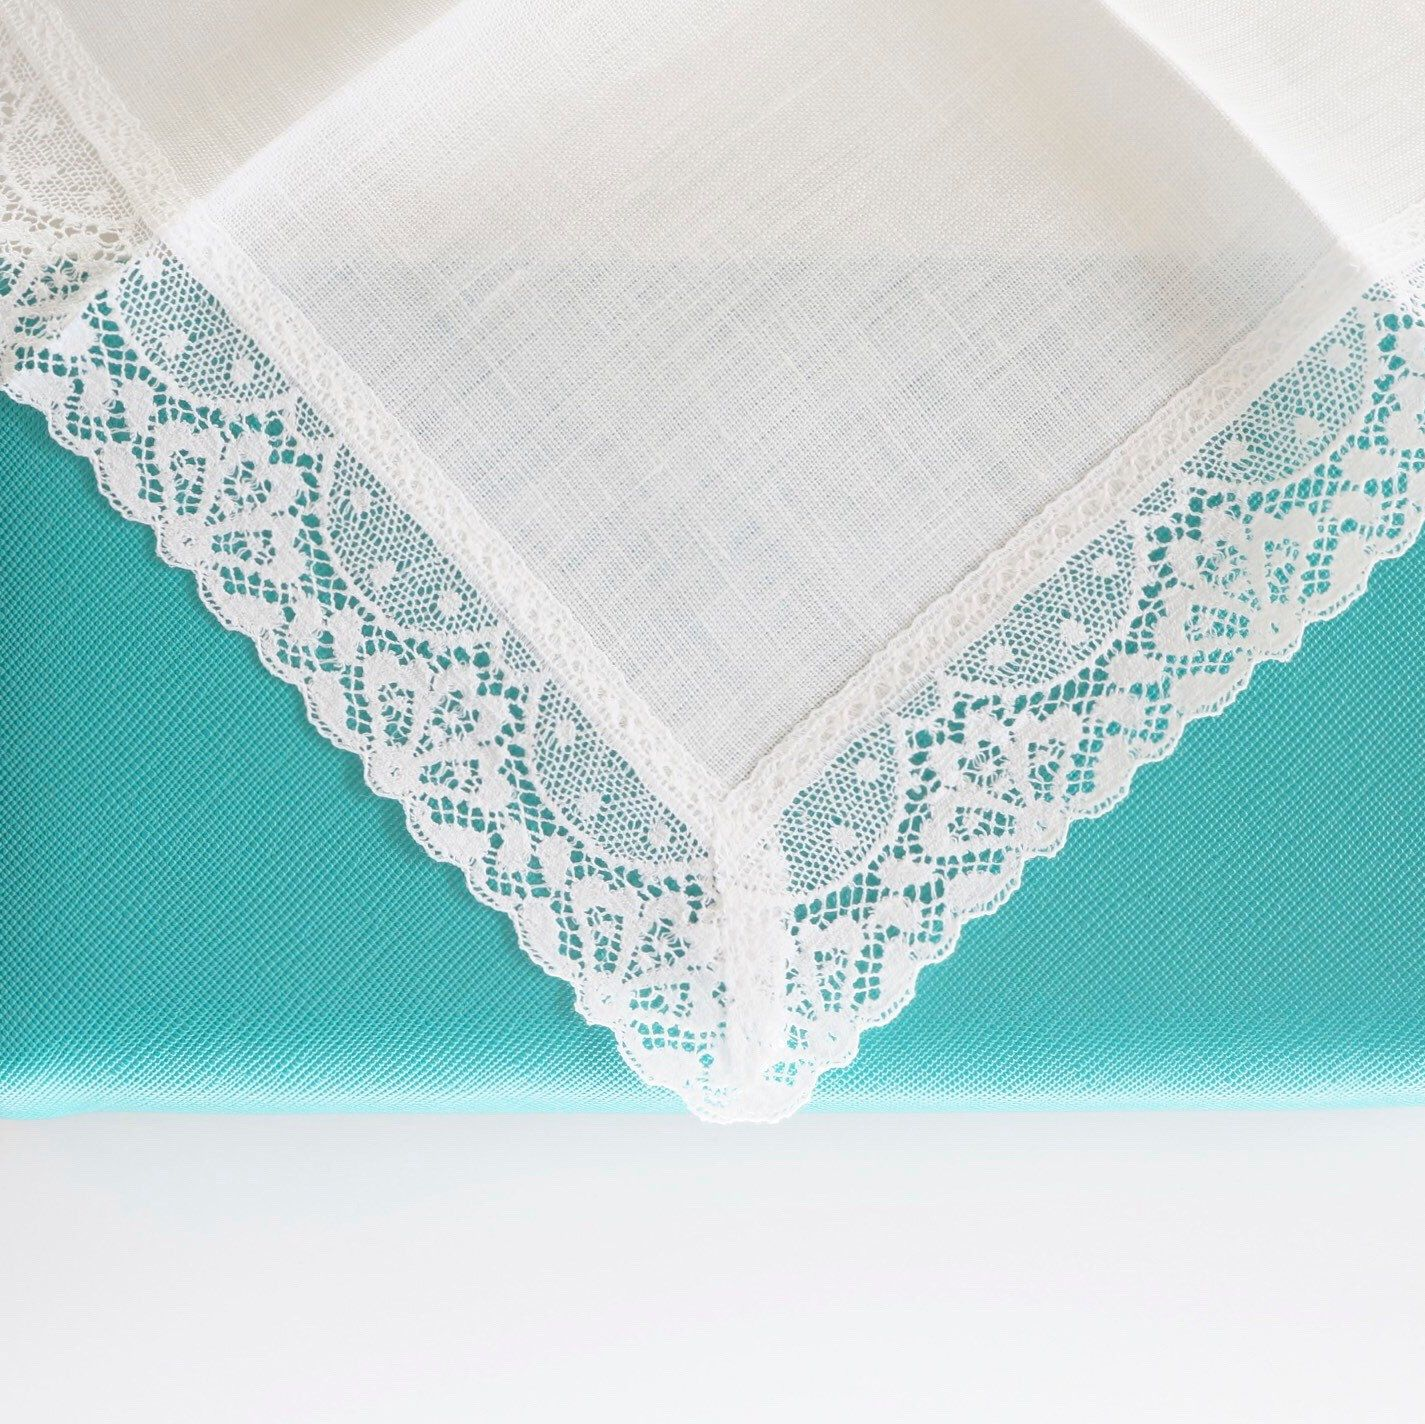 100% Irish Linen lace handkerchief for gift giving and weddings.